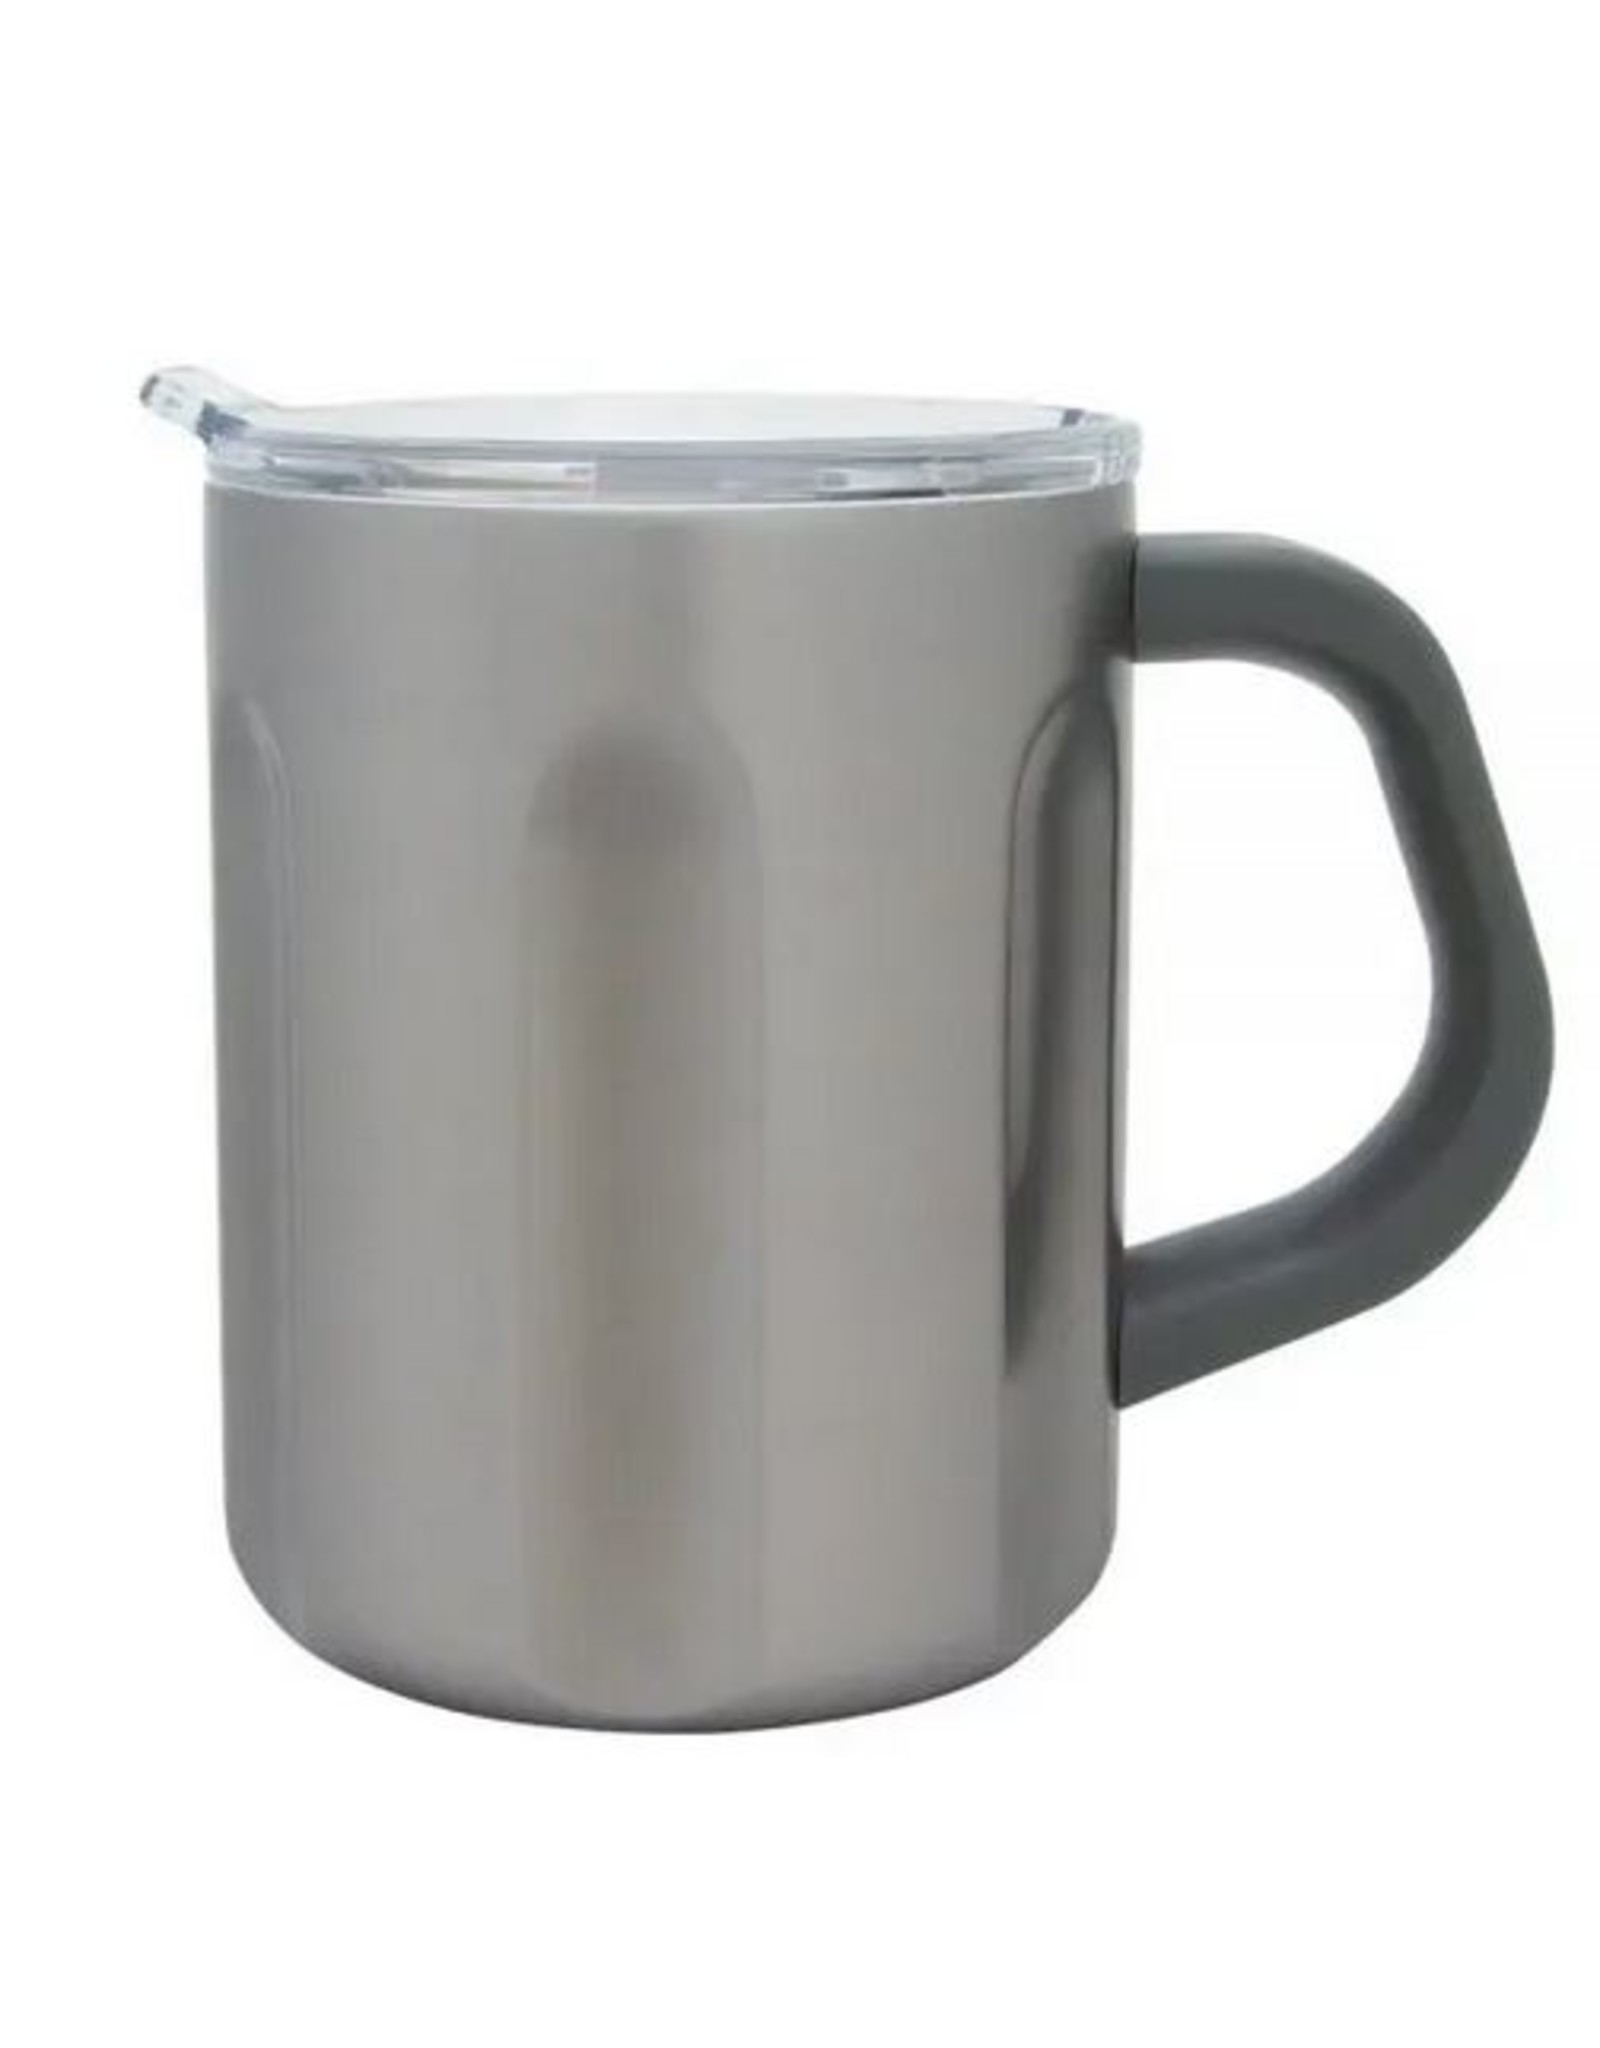 The Big Mug Stainless Steel 470ml